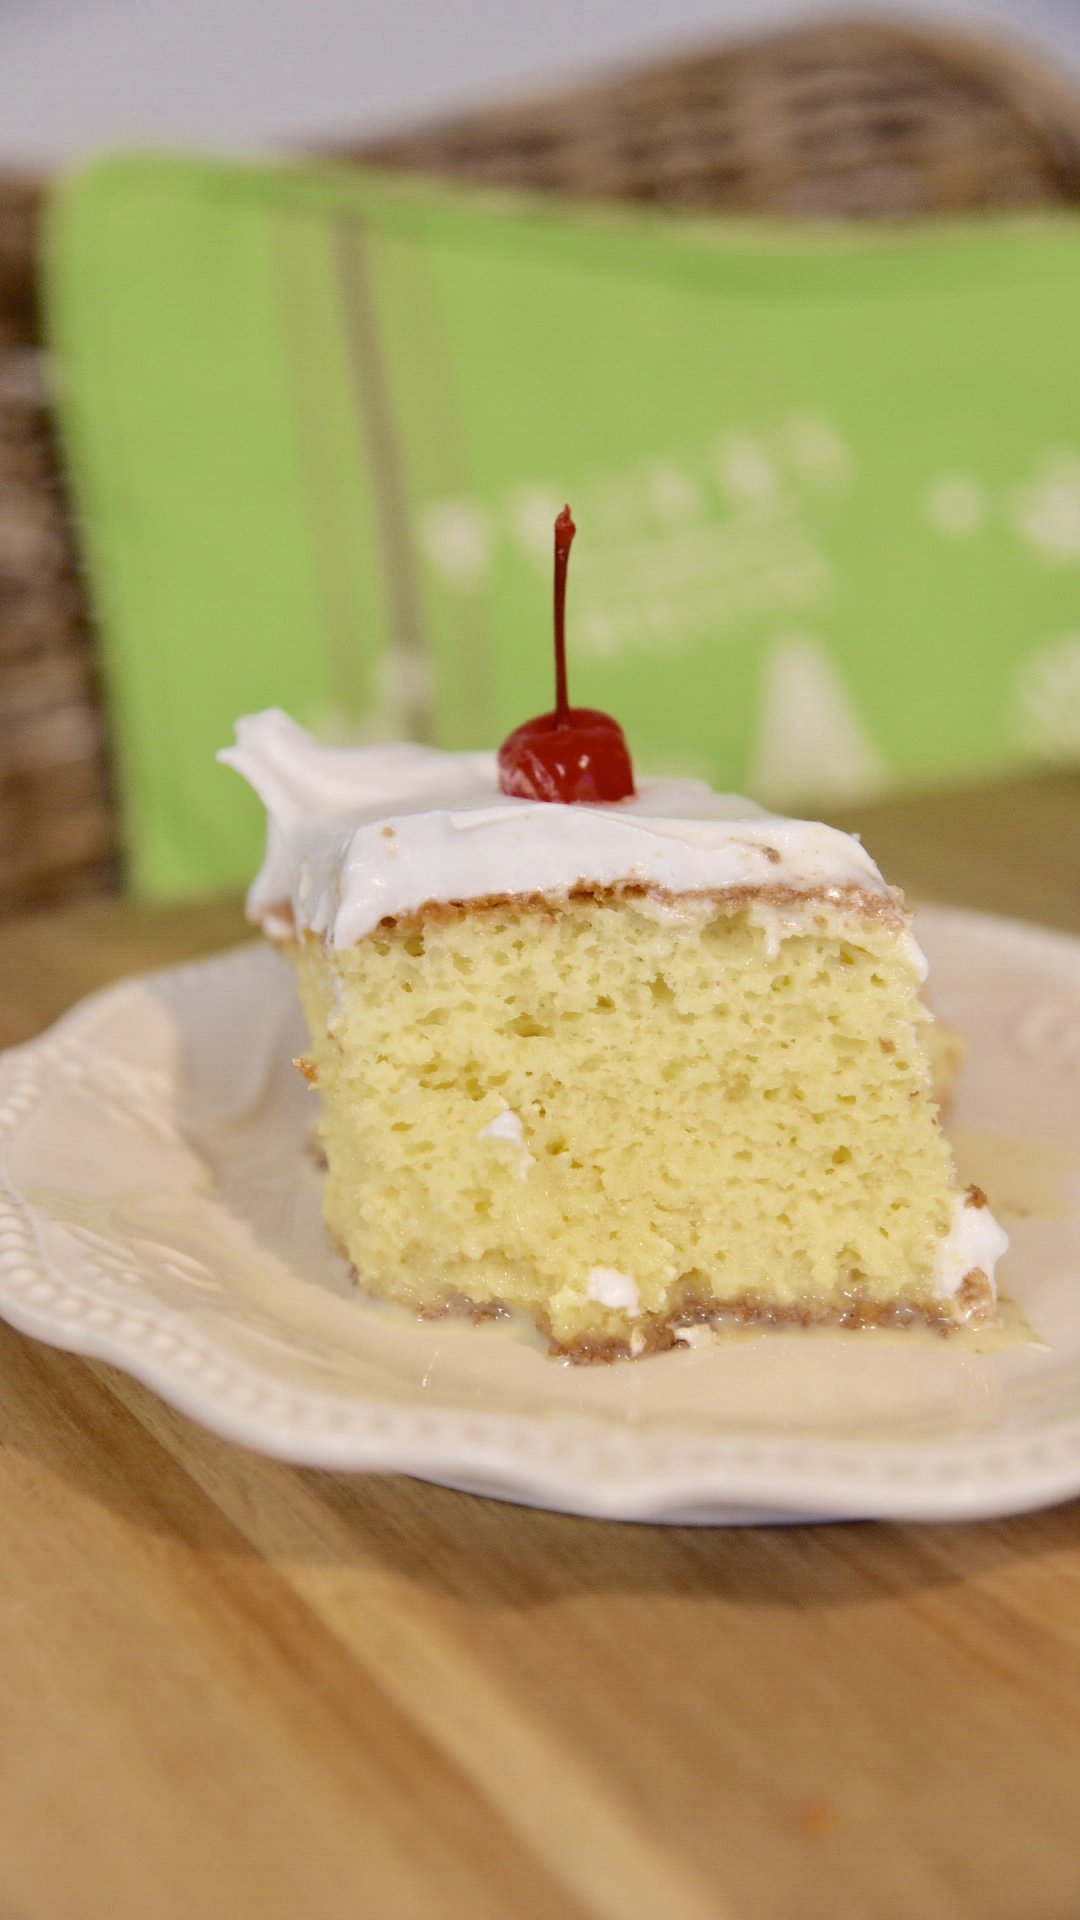 Cuban Tres Leches Cake Recipe